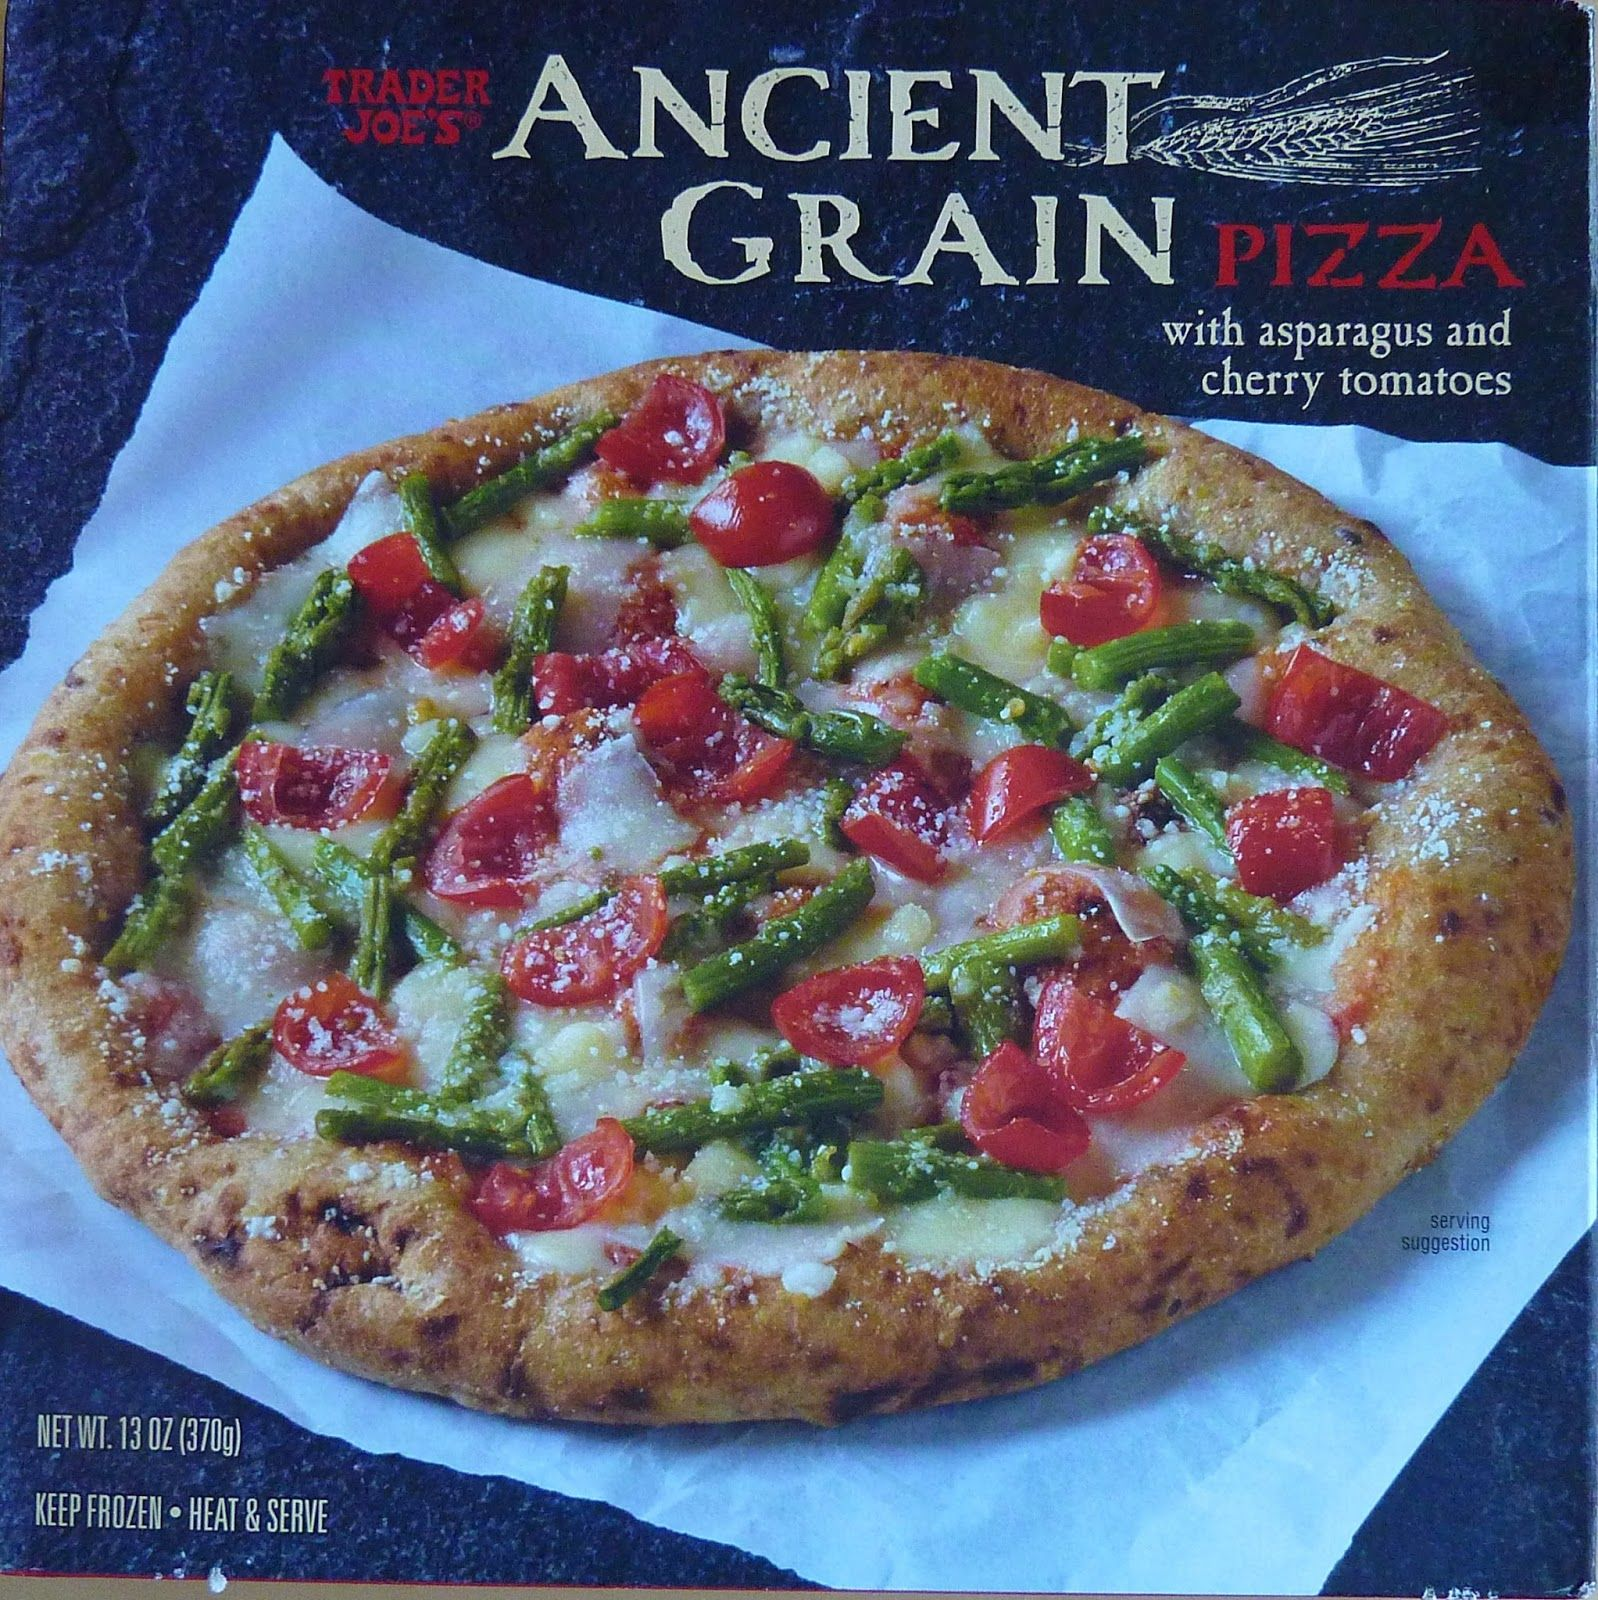 Check out our review of Trader Joe's Ancient Grain Pizza.